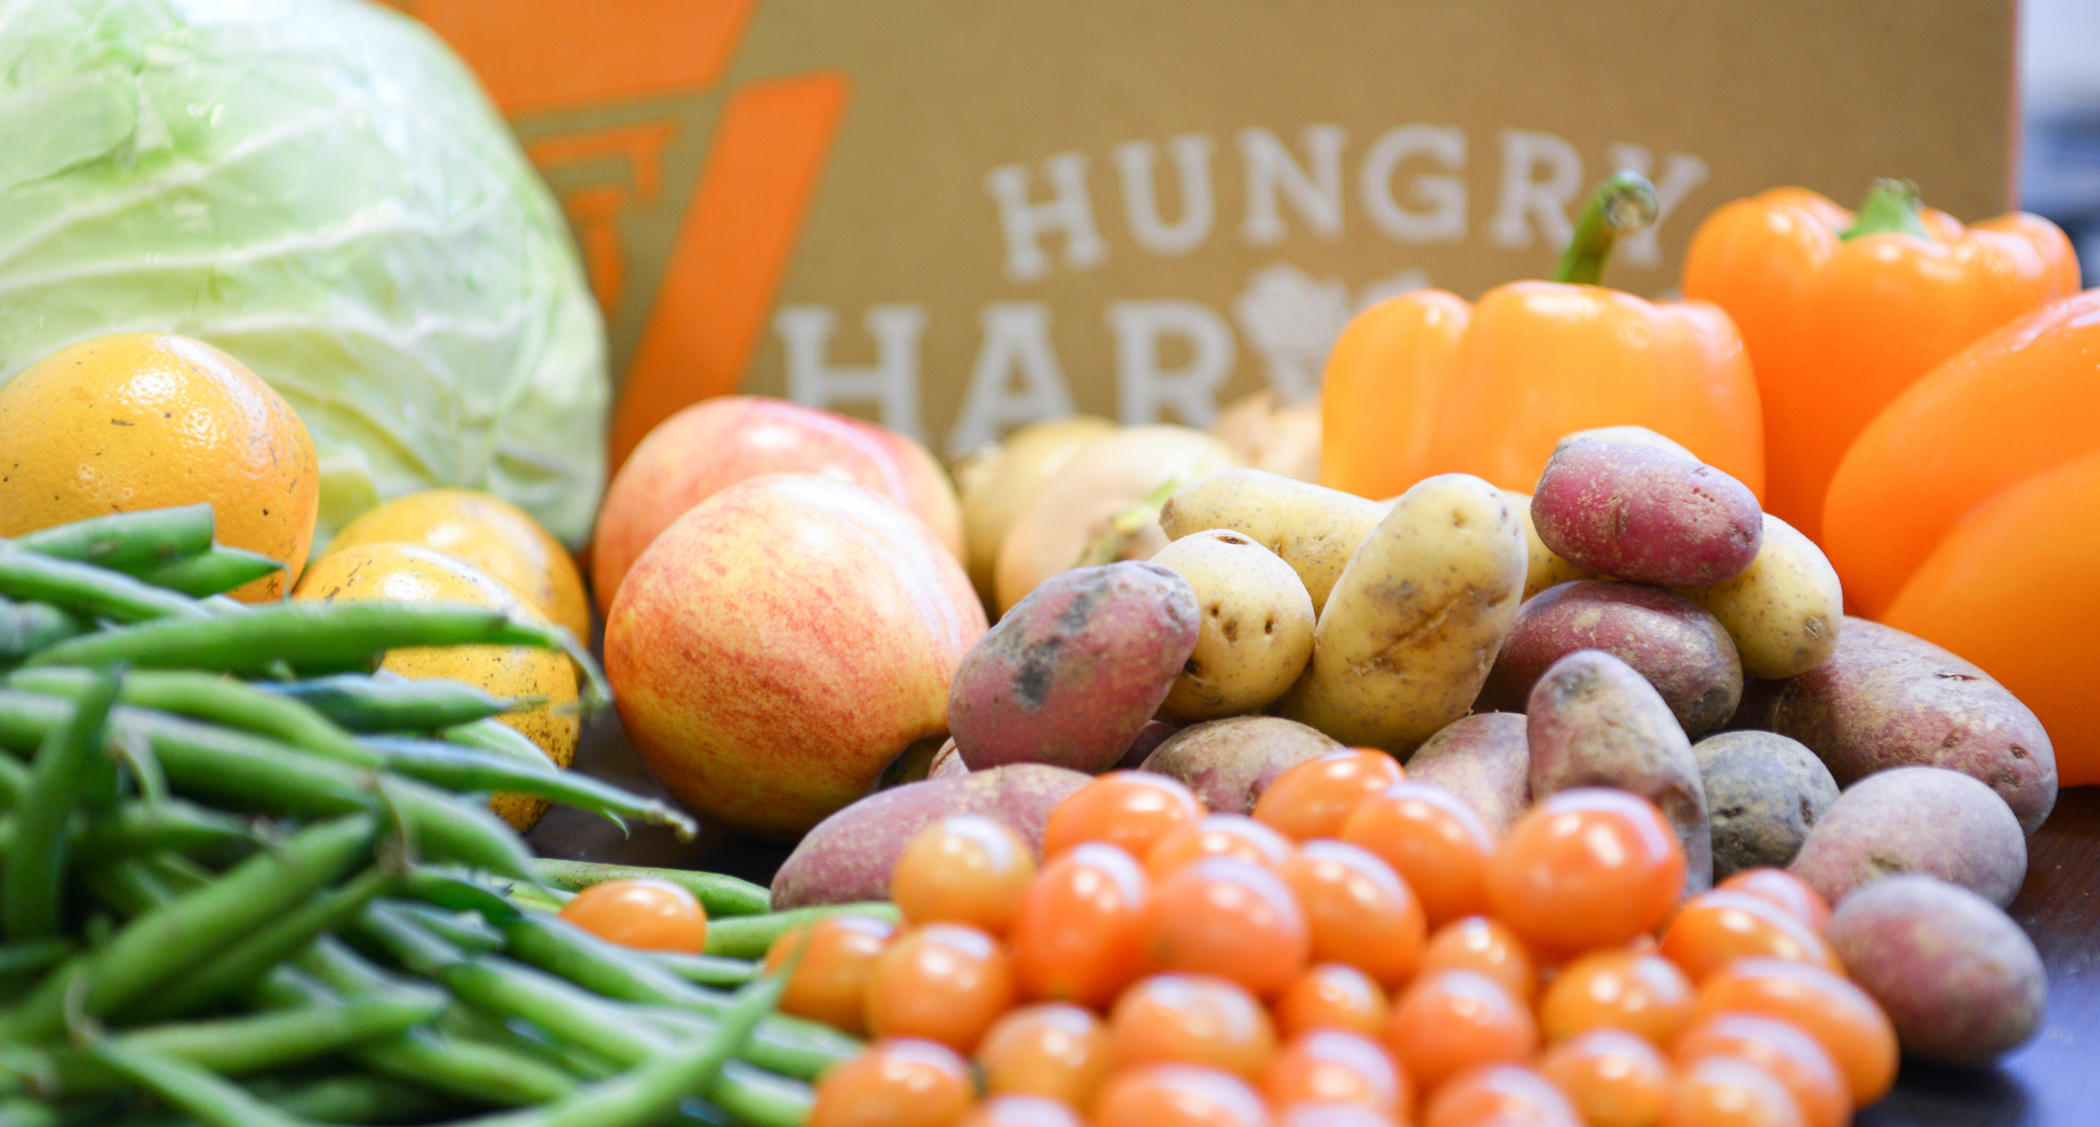 4 Easy & Awesome Recipe Ideas for This Week's Harvest -